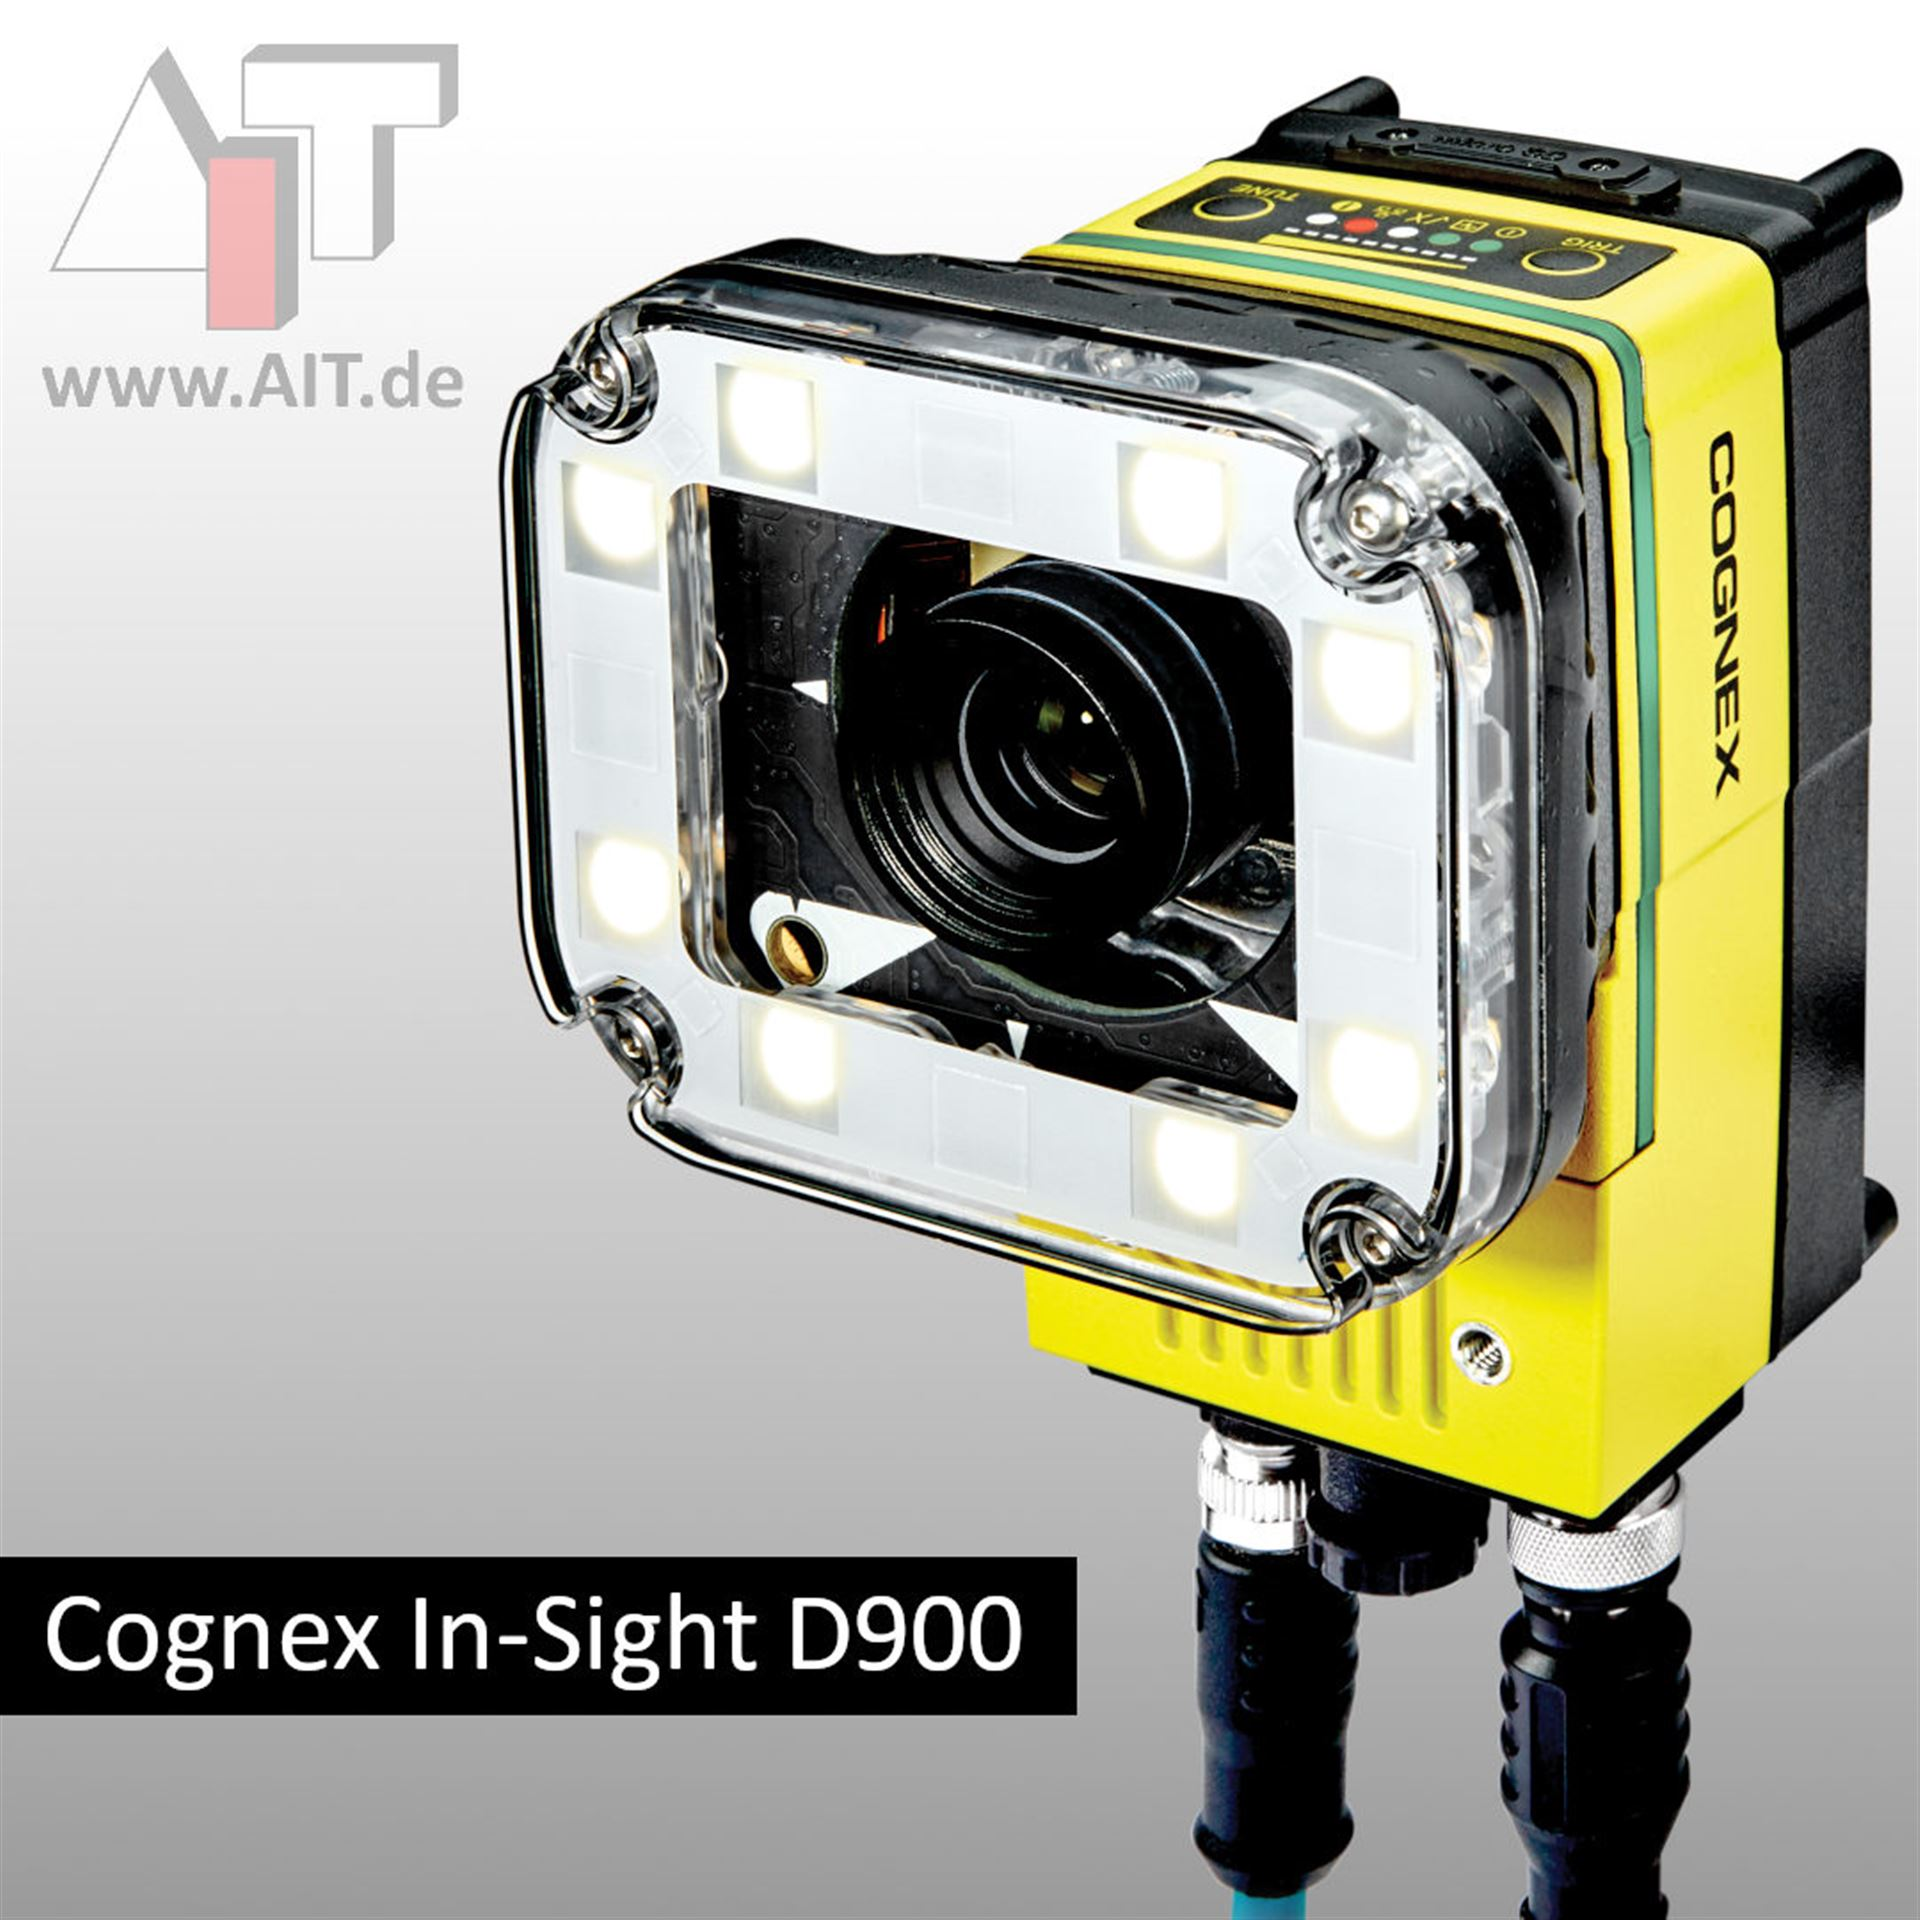 Cognex In-Sight D900 - Deep Learning auf einer Smart Kamera